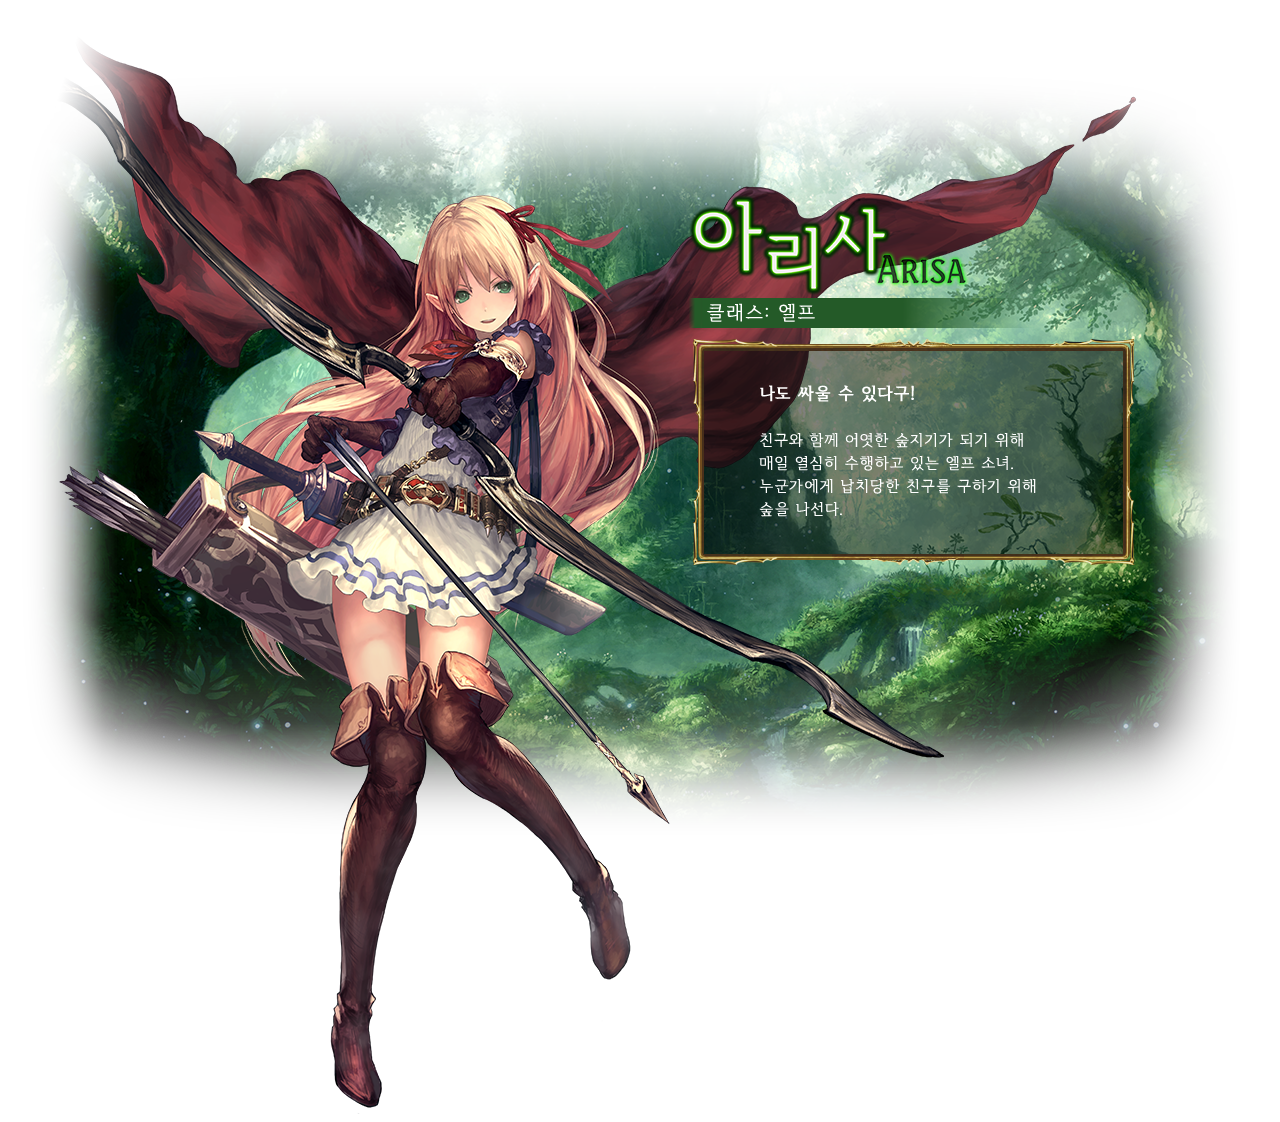 Arisa / Class: Forestcraft / Arisa is training as a guardian of the forest. She is inseparable from her friend Losaria until one day a menacing creature appears in their path.